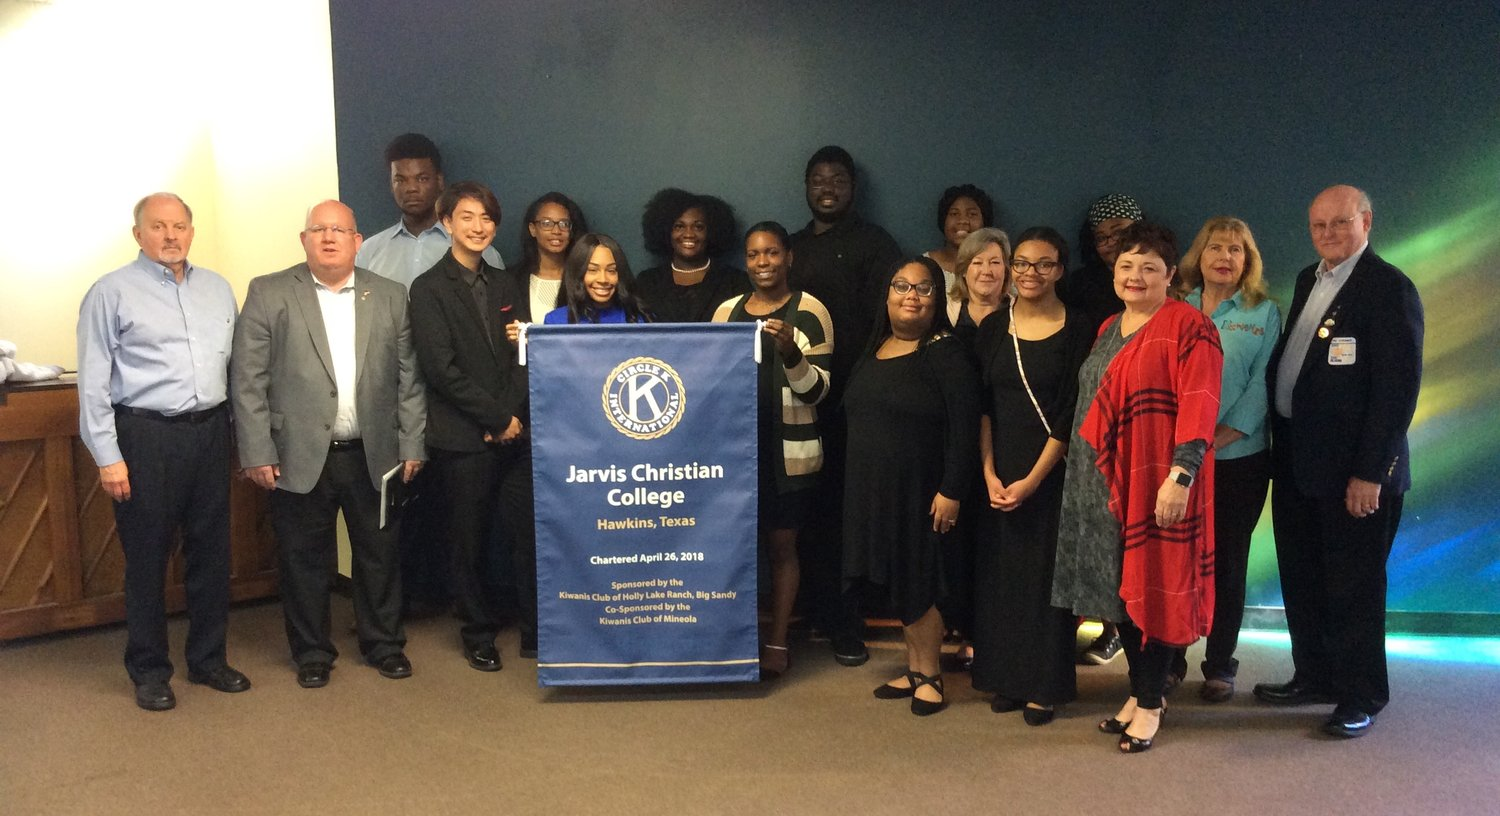 Mineola and Holly Lake Kiwanis Clubs were honored by Jarvis Christian College for their work supporting the Circle K International Club on the Jarvis campus.